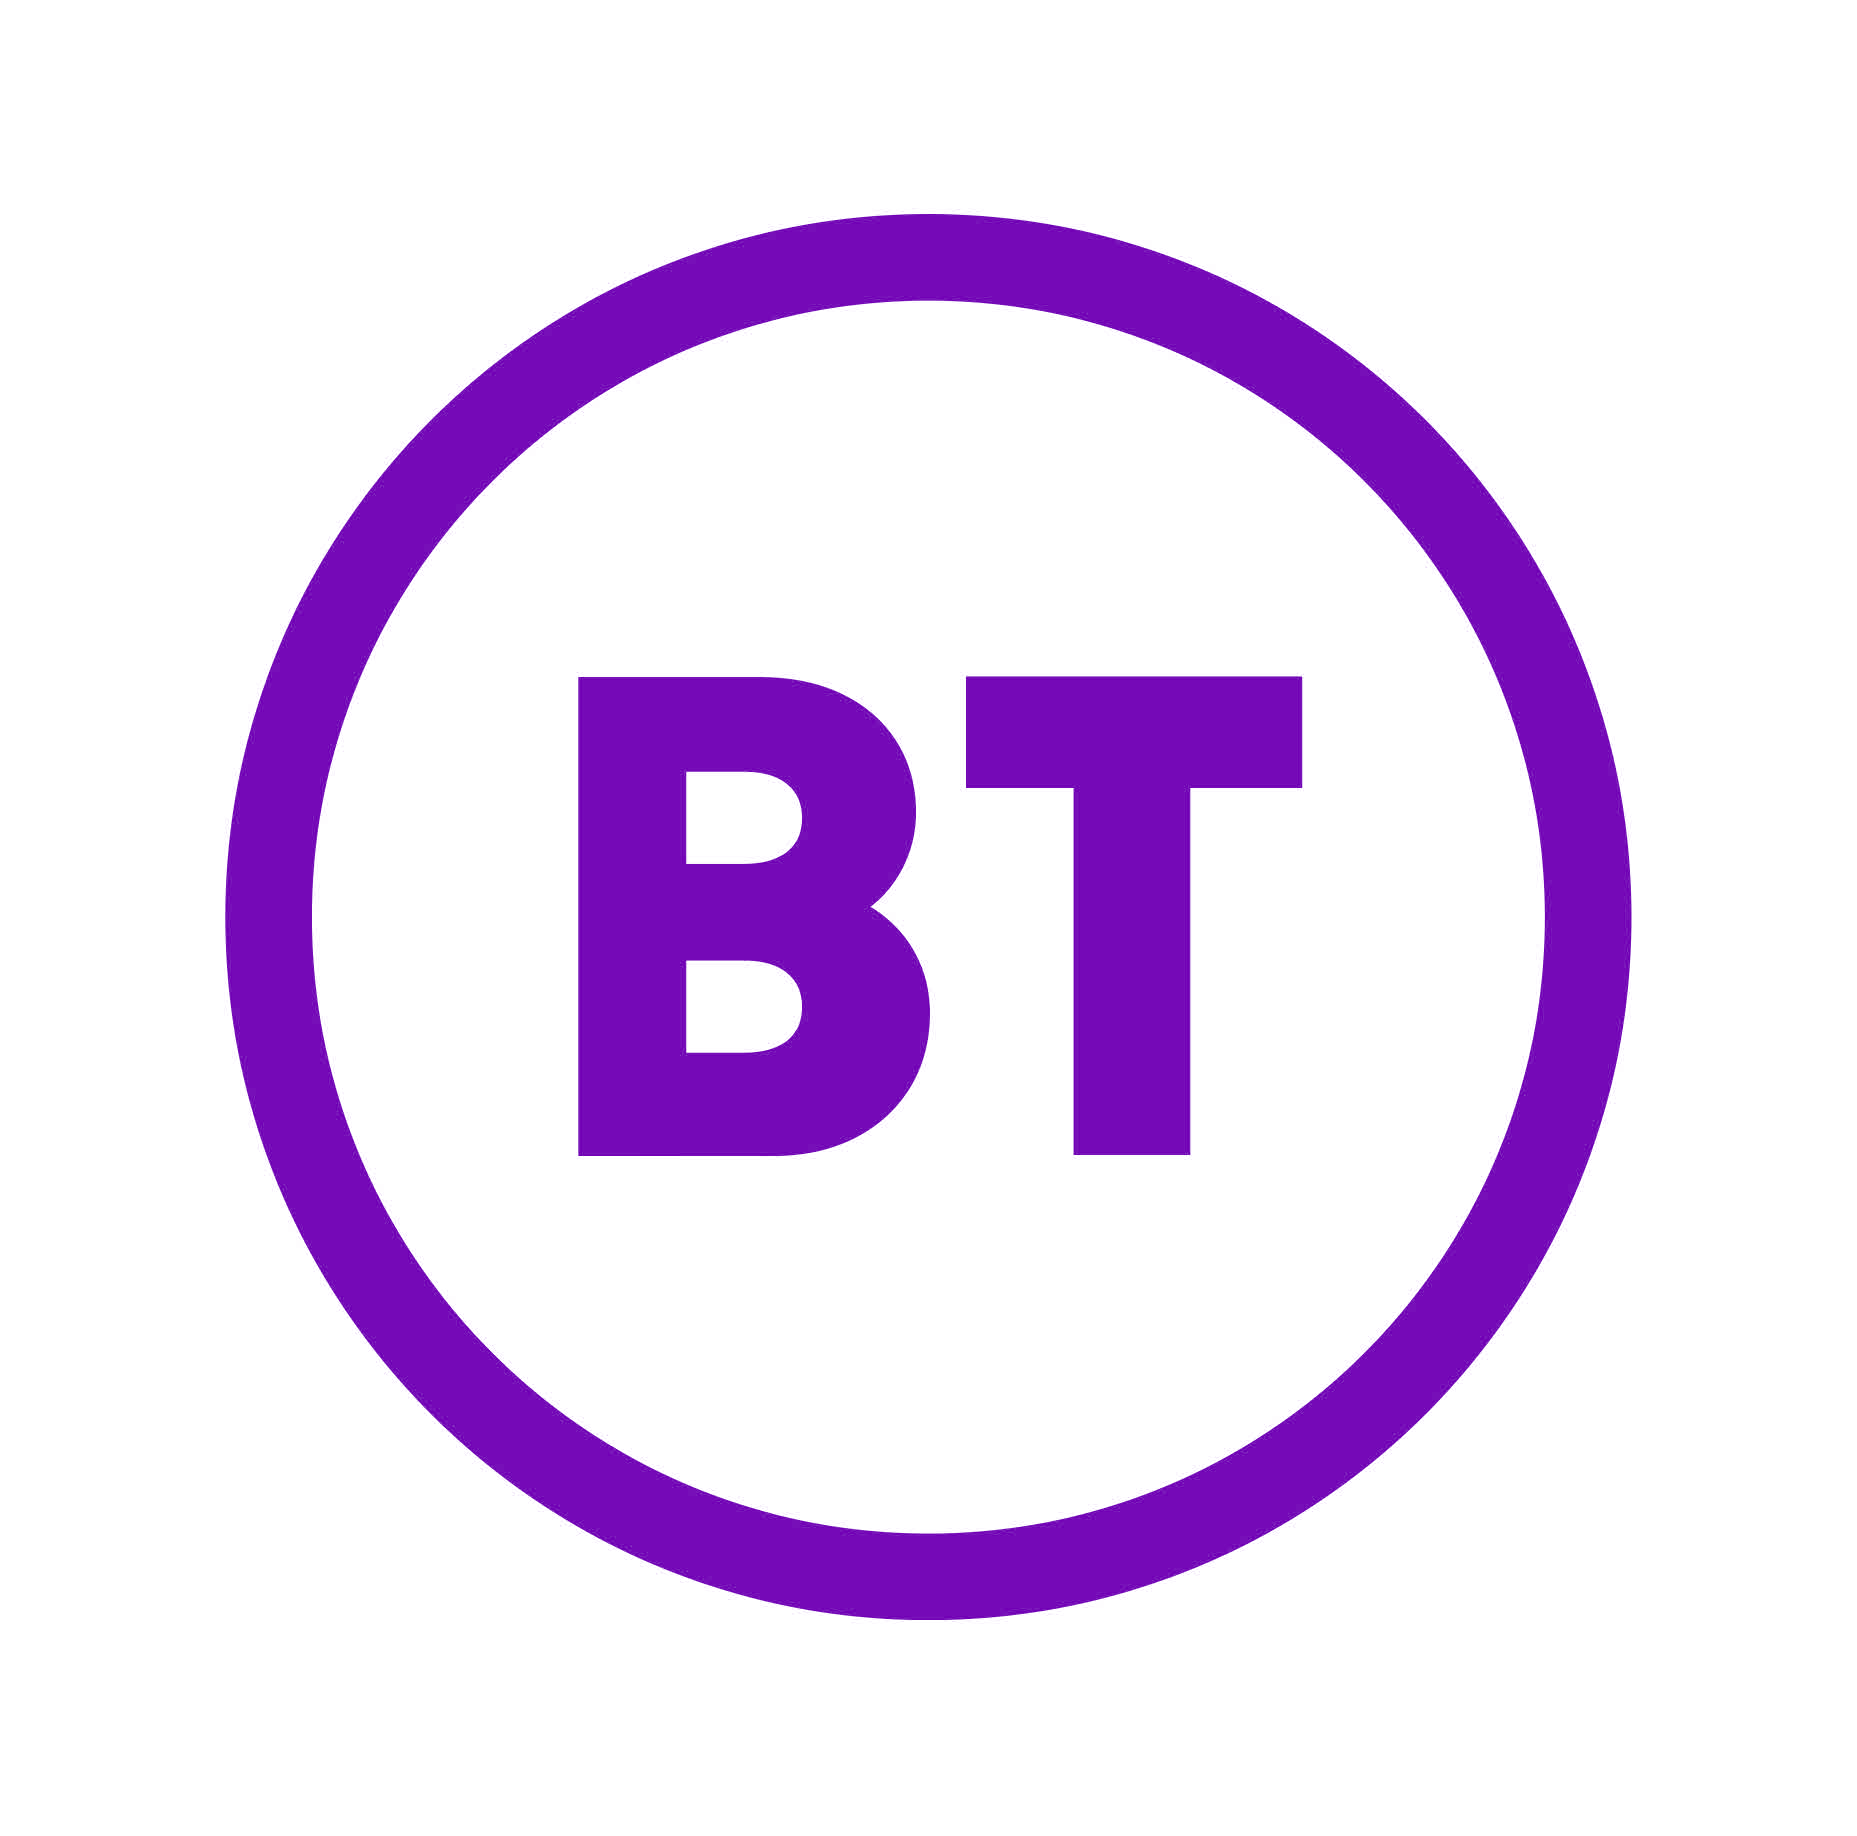 New Logo For Bt By Red White Typography Branding Graphic Design Firms Gomez Palacio